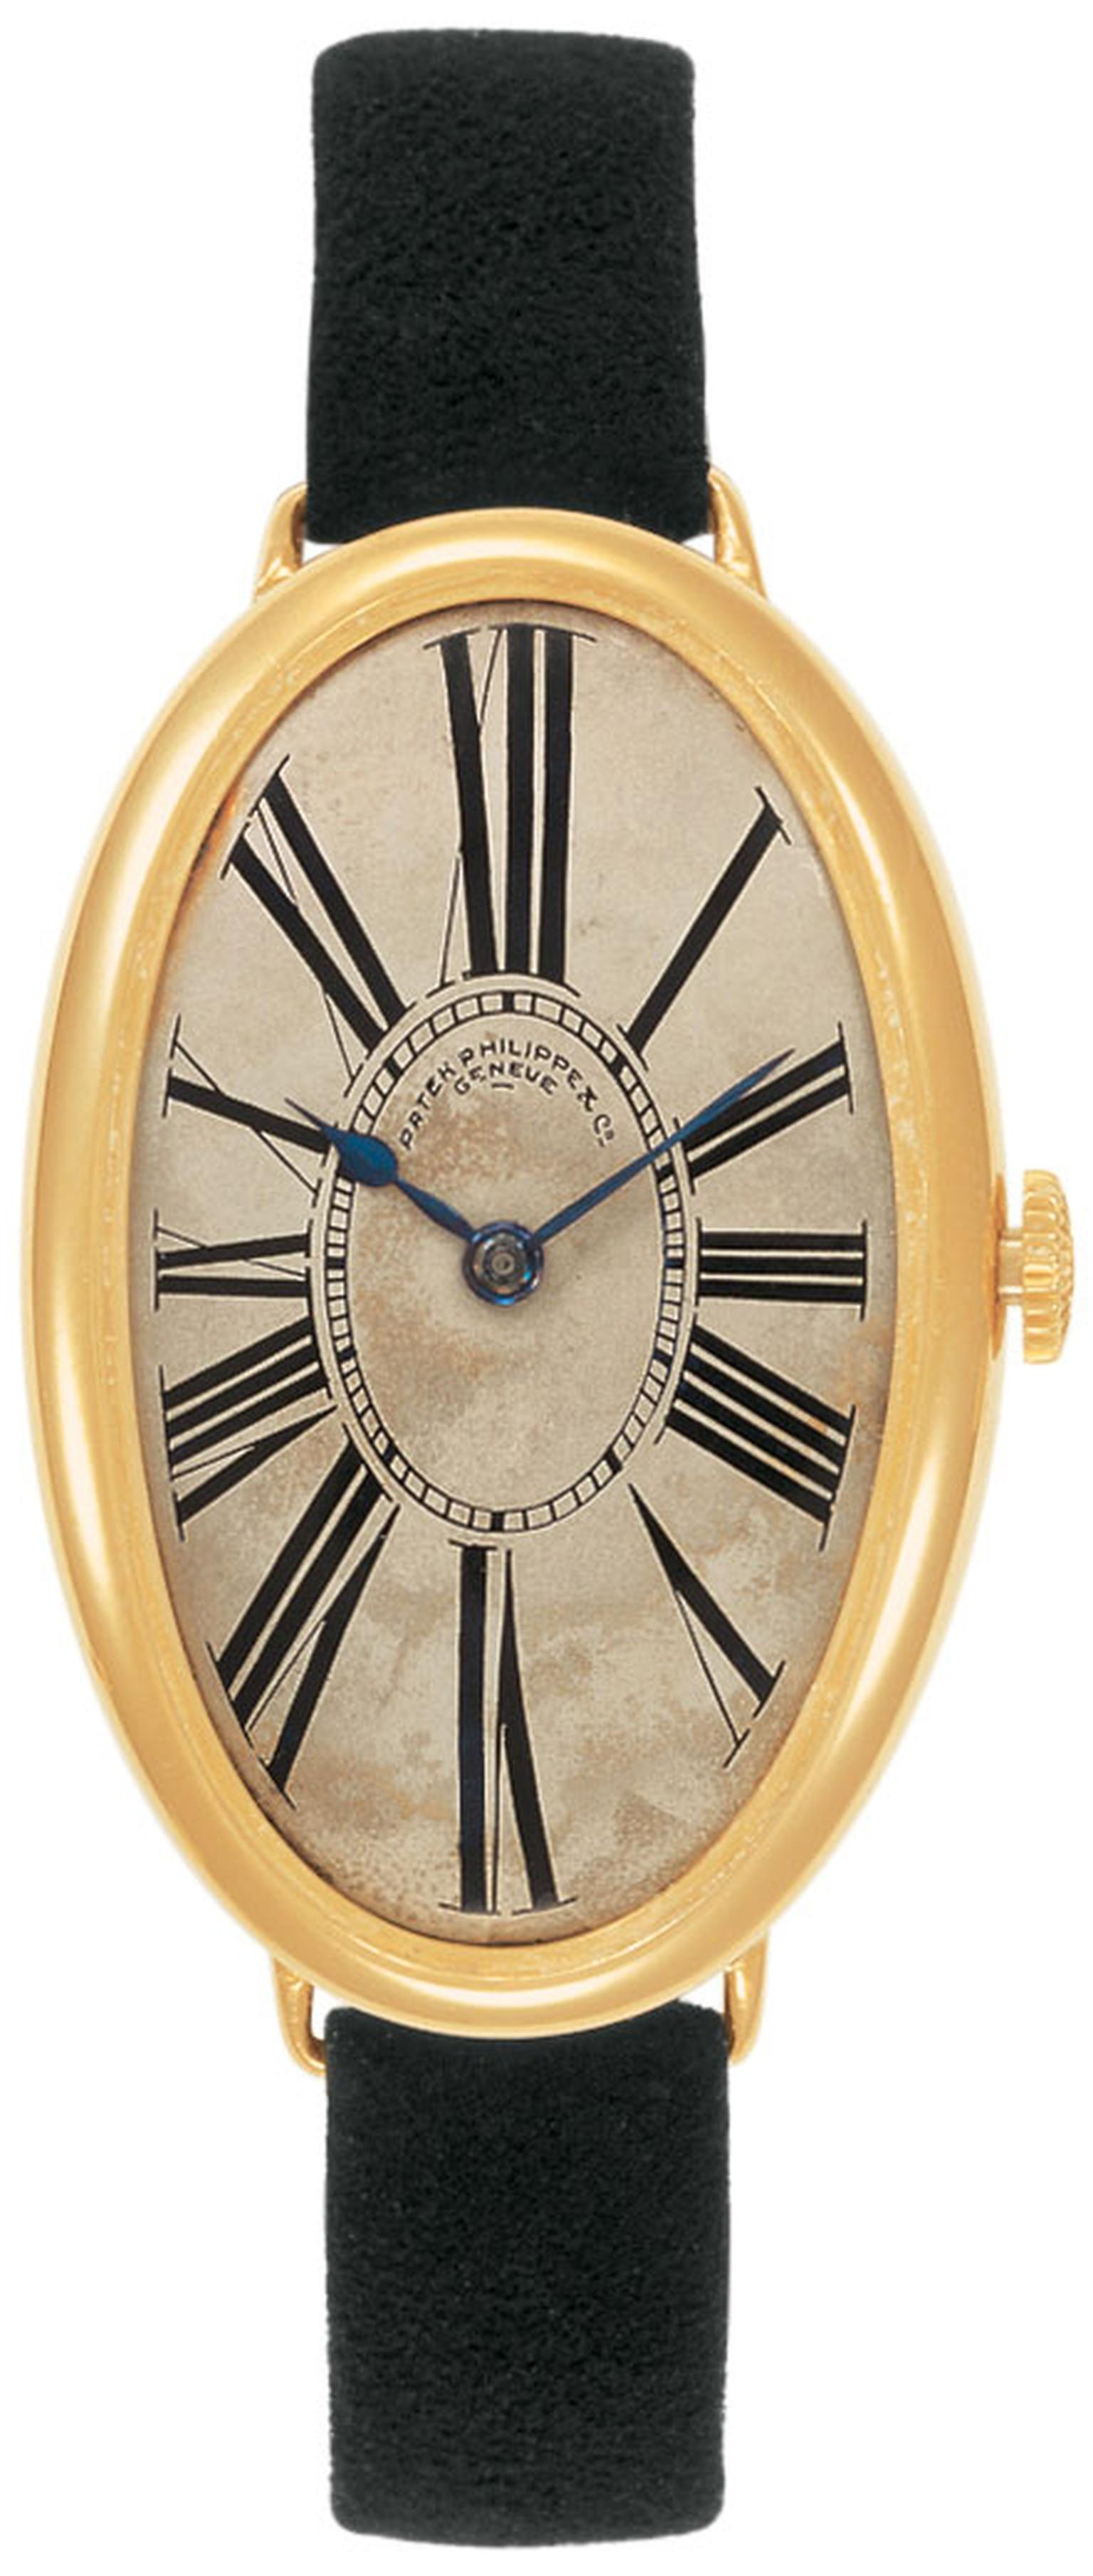 Patek-Philippe-P1155_a_100_collection--1915-25